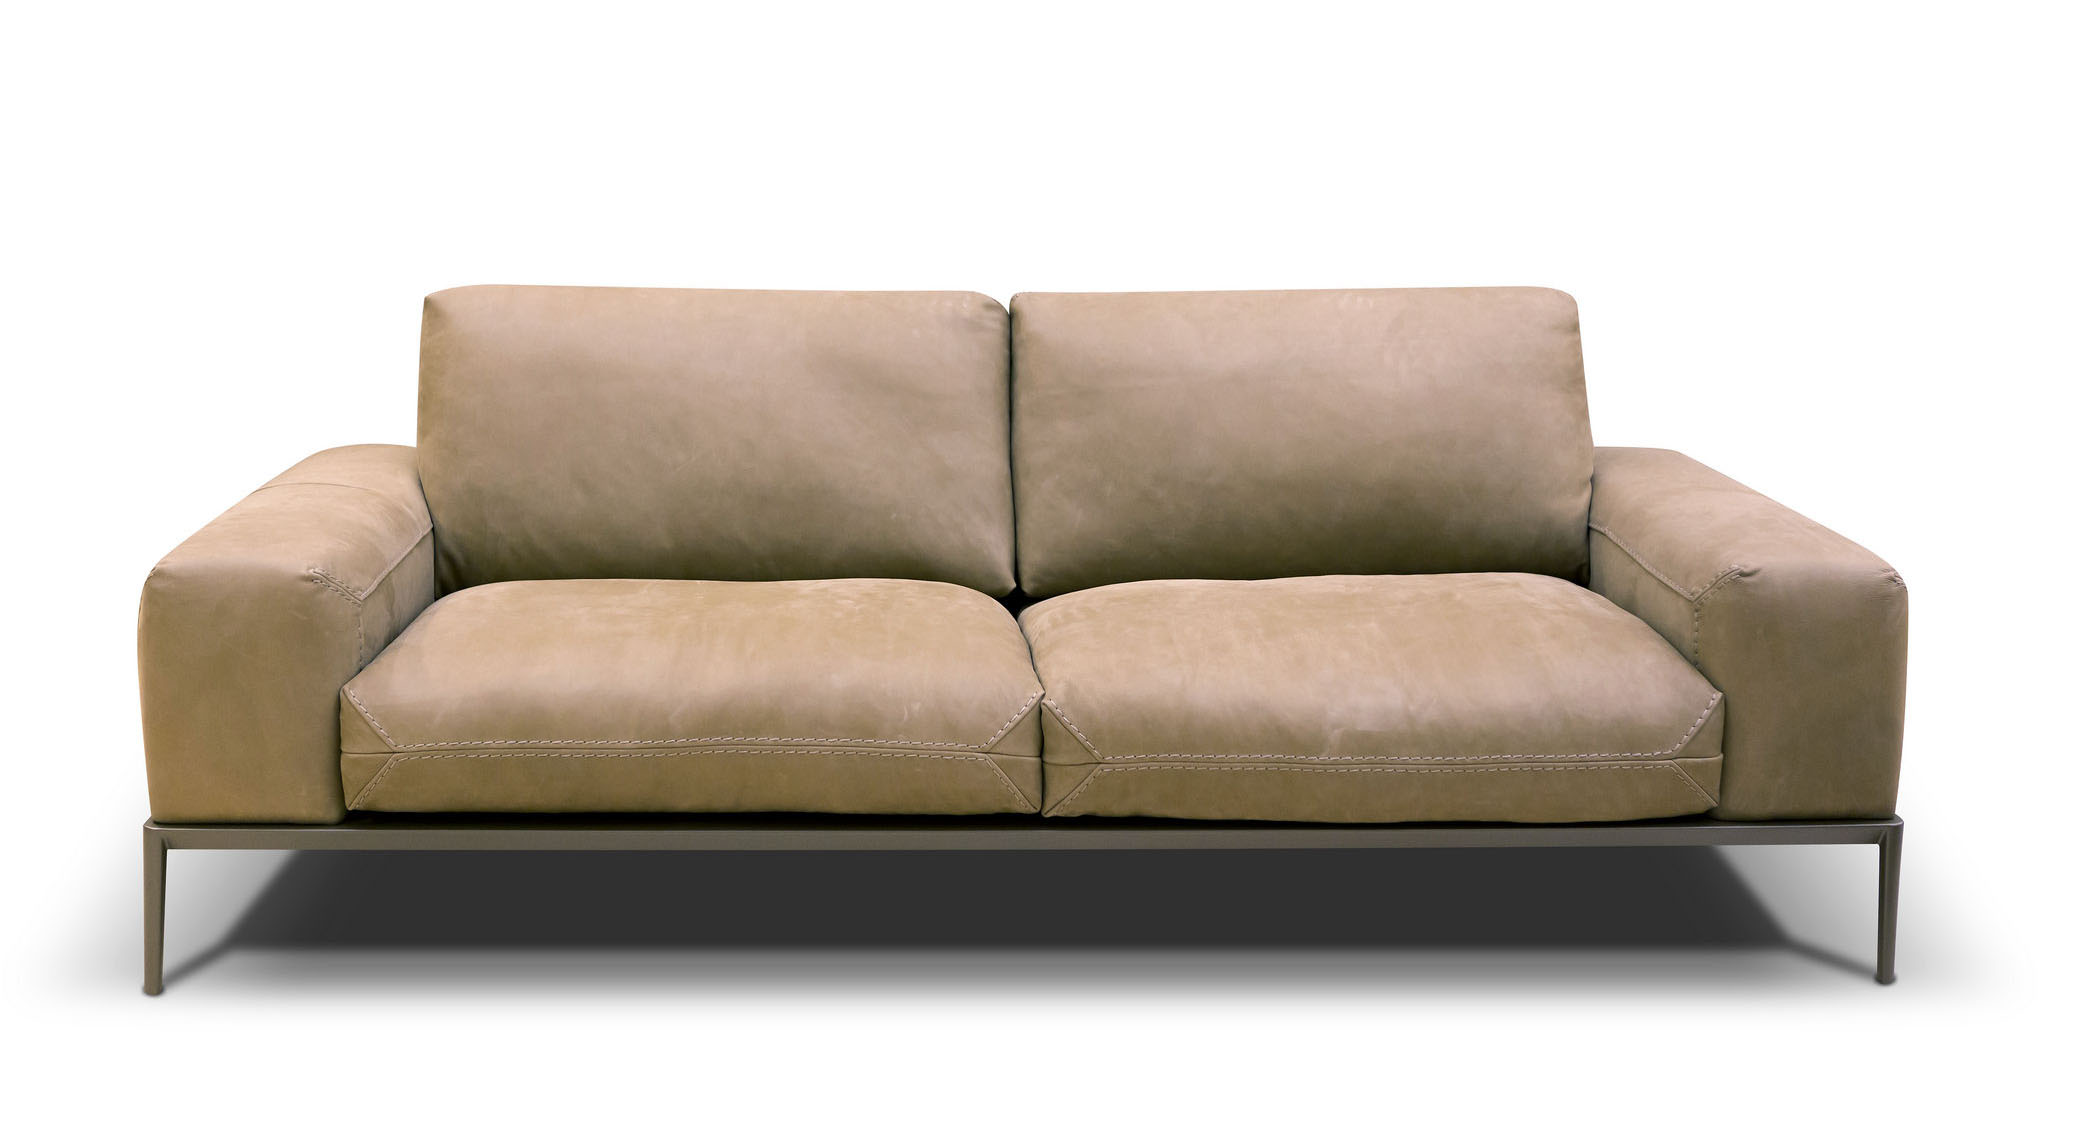 Bracci Chic sofa